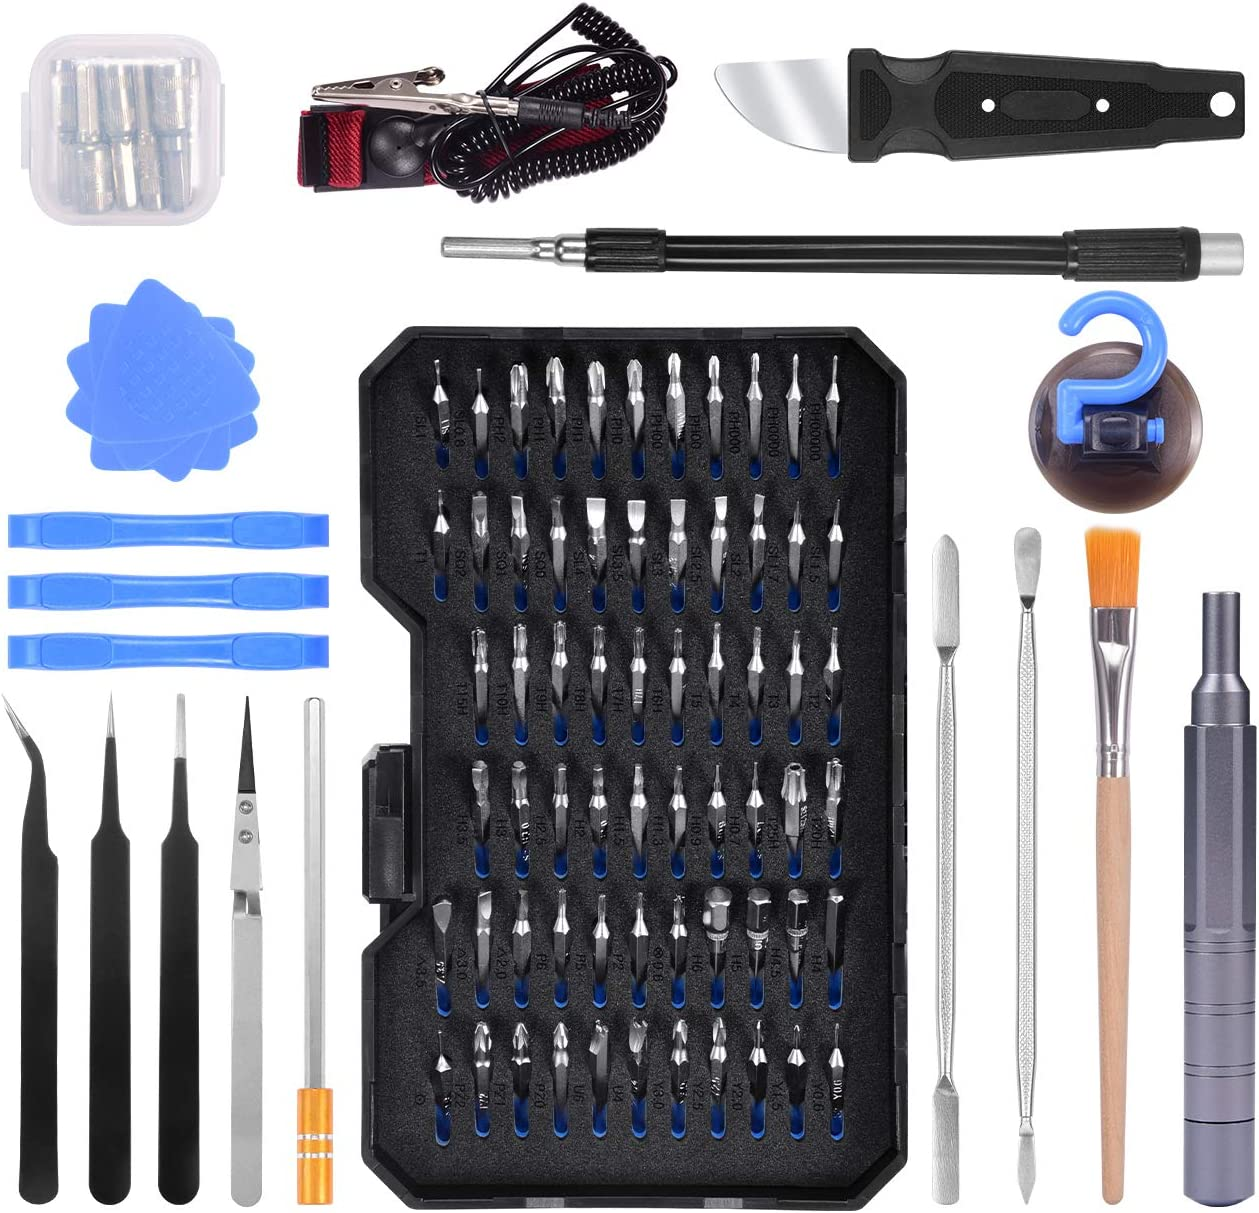 Lifechaser 94 in 1 Precision Screwdriver Bit Set Magnetic Electronics Repair Tool, for iPhone, iPad, Android, Tablet, MacBook, PC, Laptop, Apple Watch, Switch, Xbox, Playstation, Watch and More